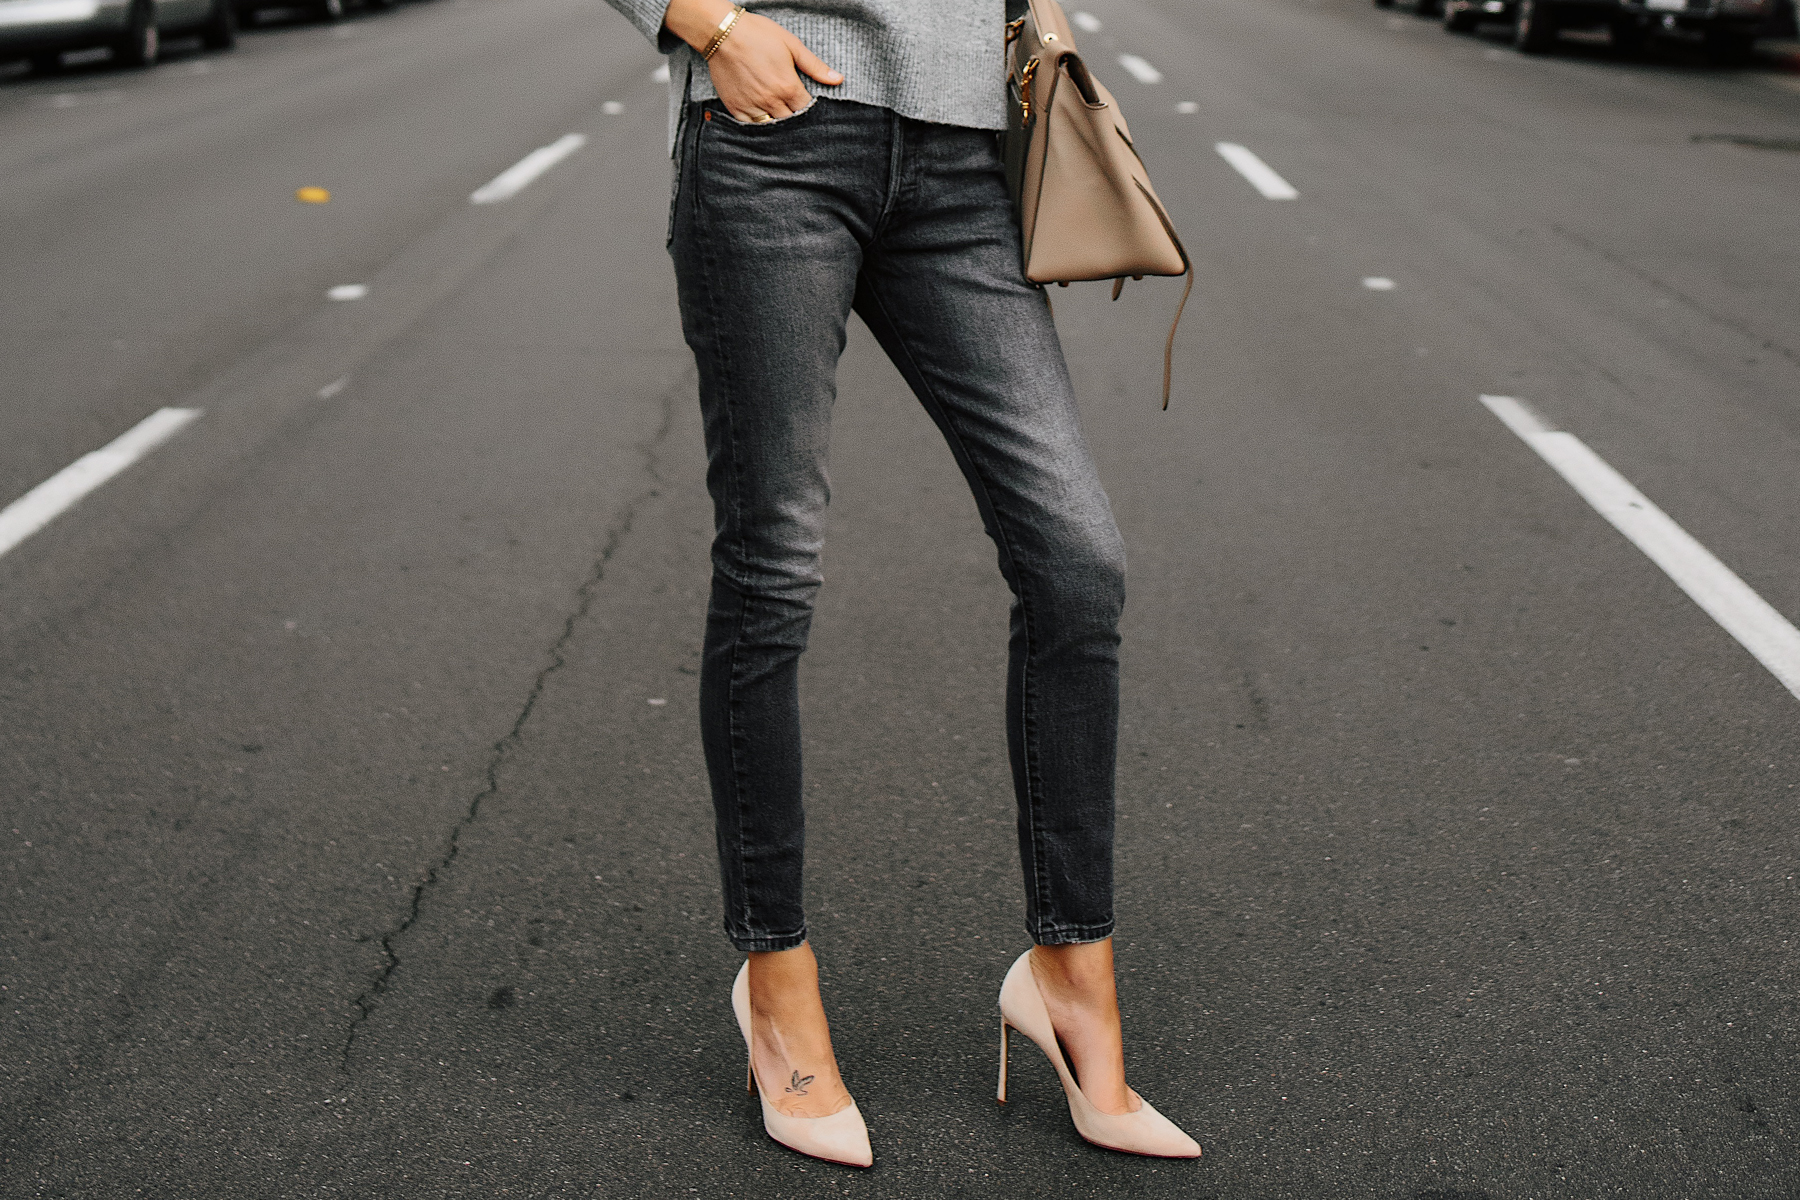 Woman Wearing Levis 501 Grey High Waist Skinny Jeans Tan Pumps Fashion Jackson San Diego Fashion Blogger Street Style